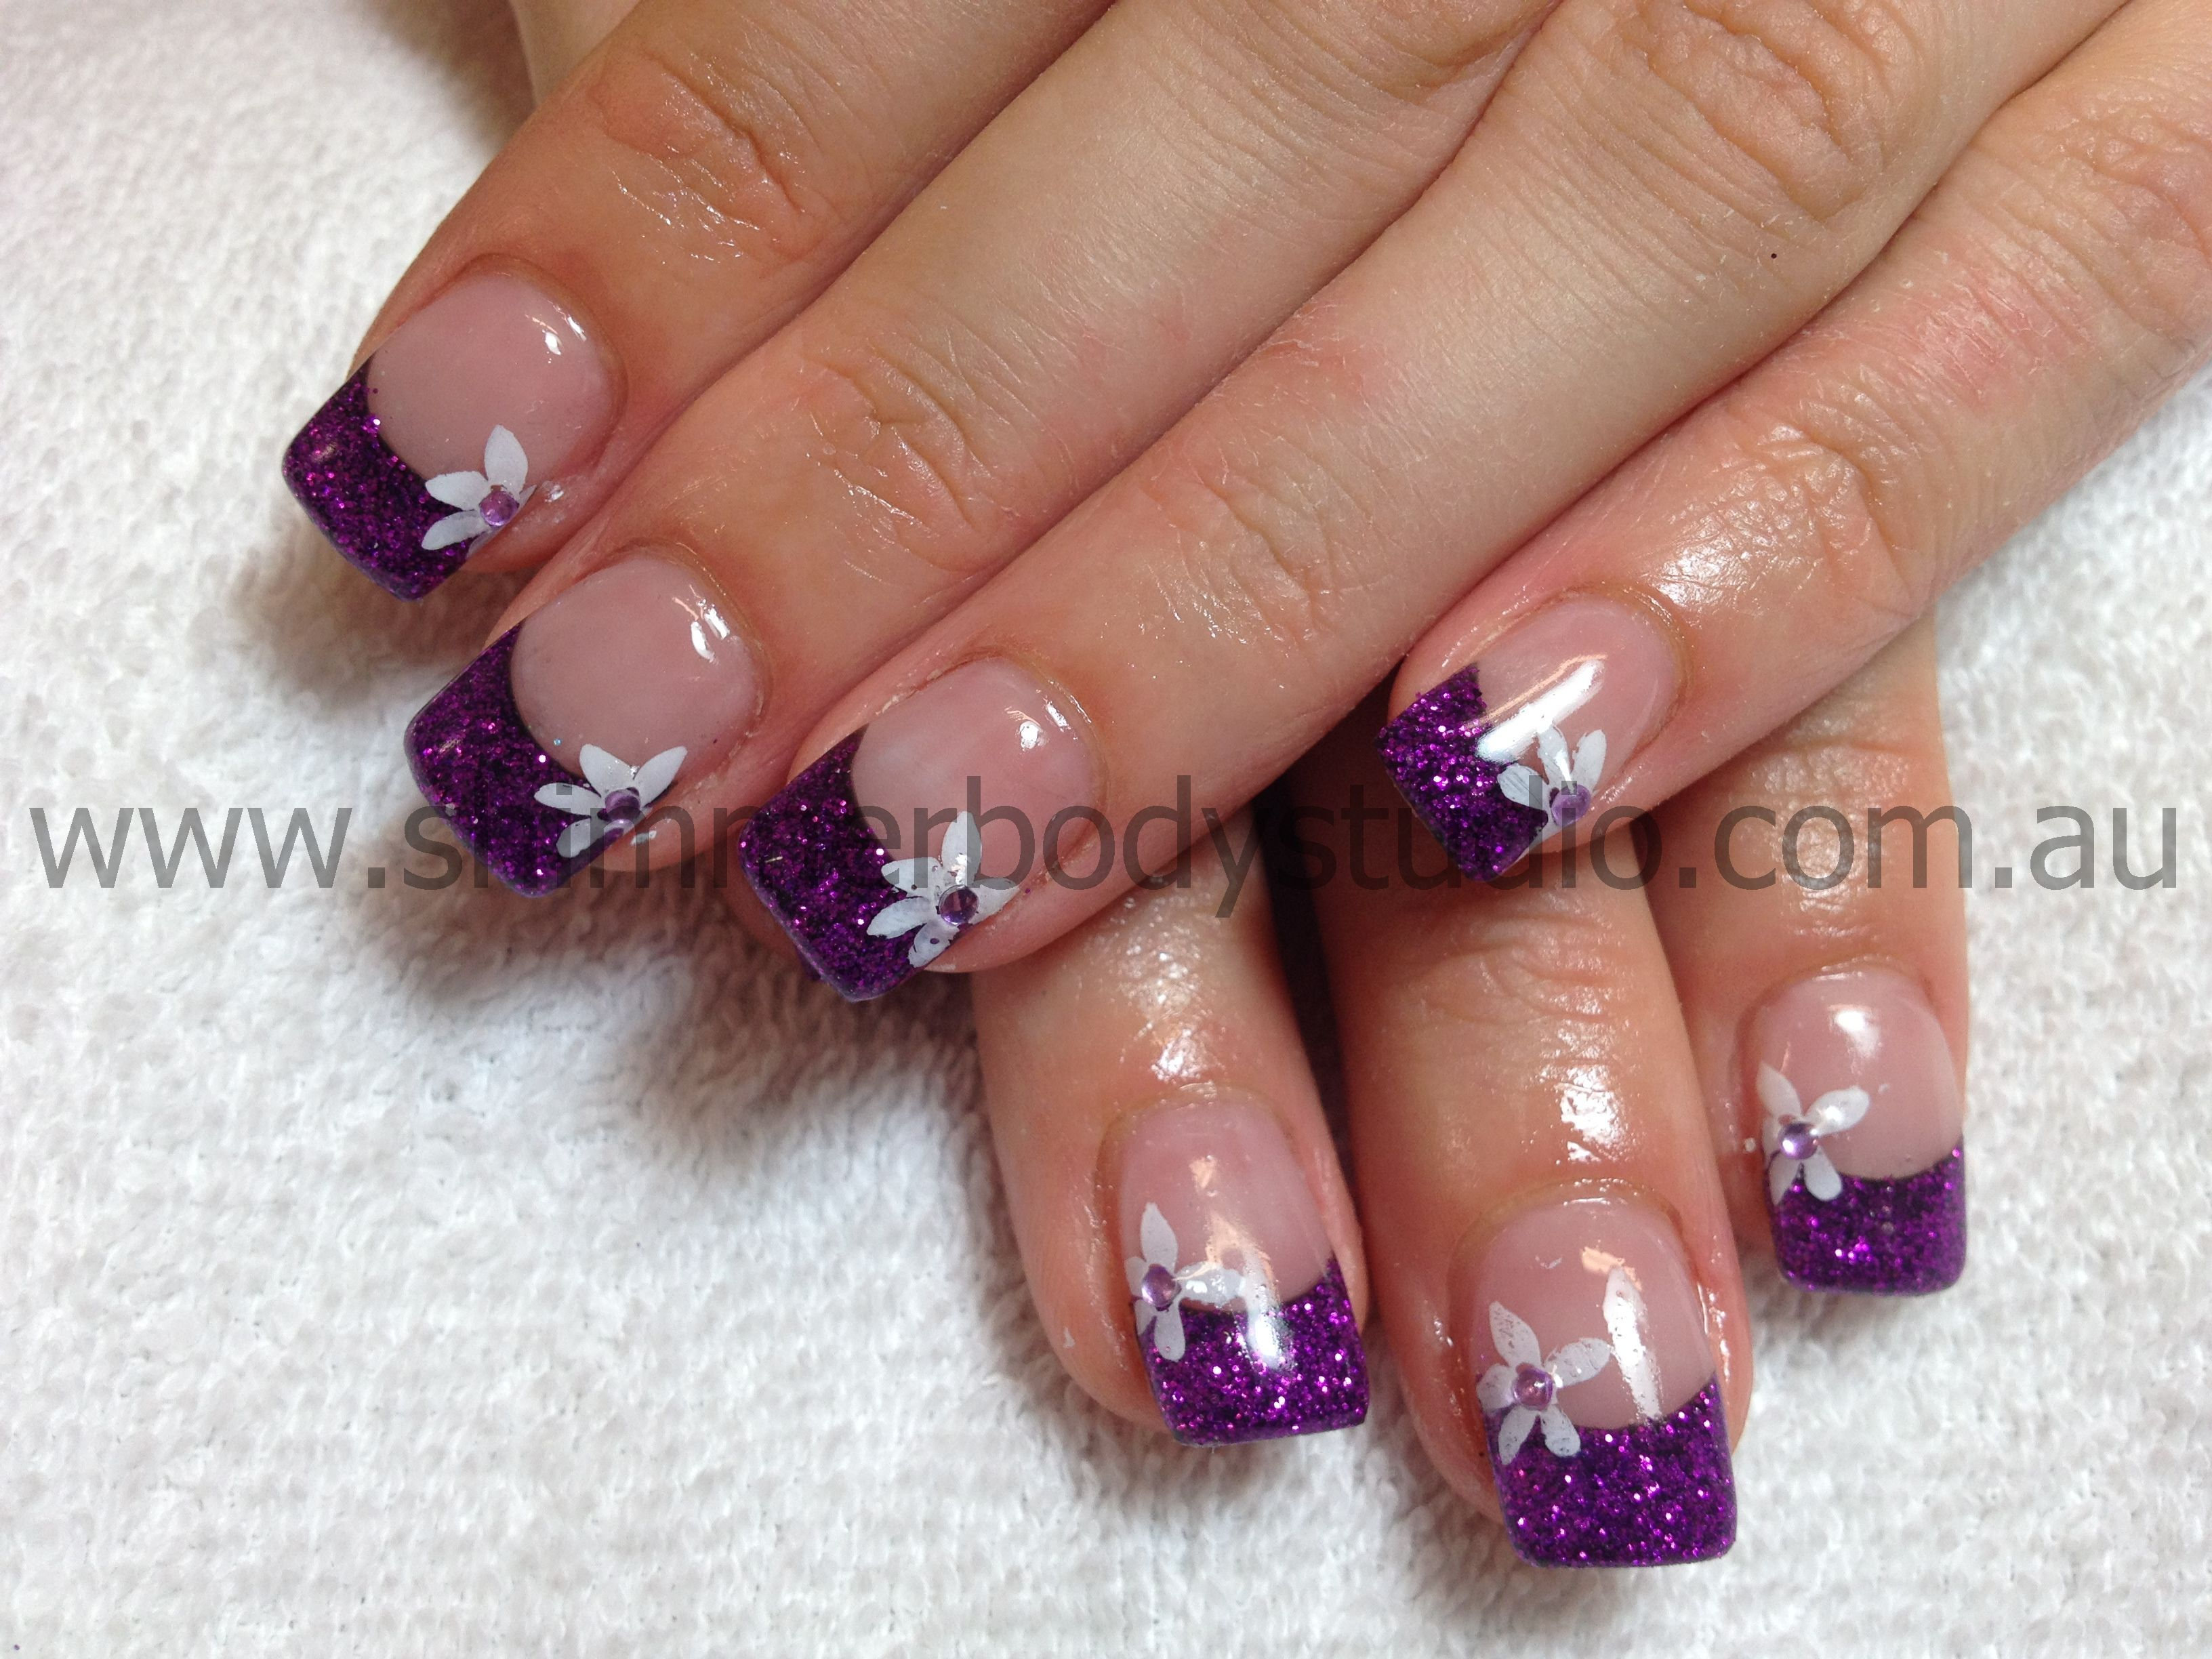 Gel nails glitter nails purple nails flower nail art konad gel nails glitter nails purple nails flower nail art konad stamping nail prinsesfo Images